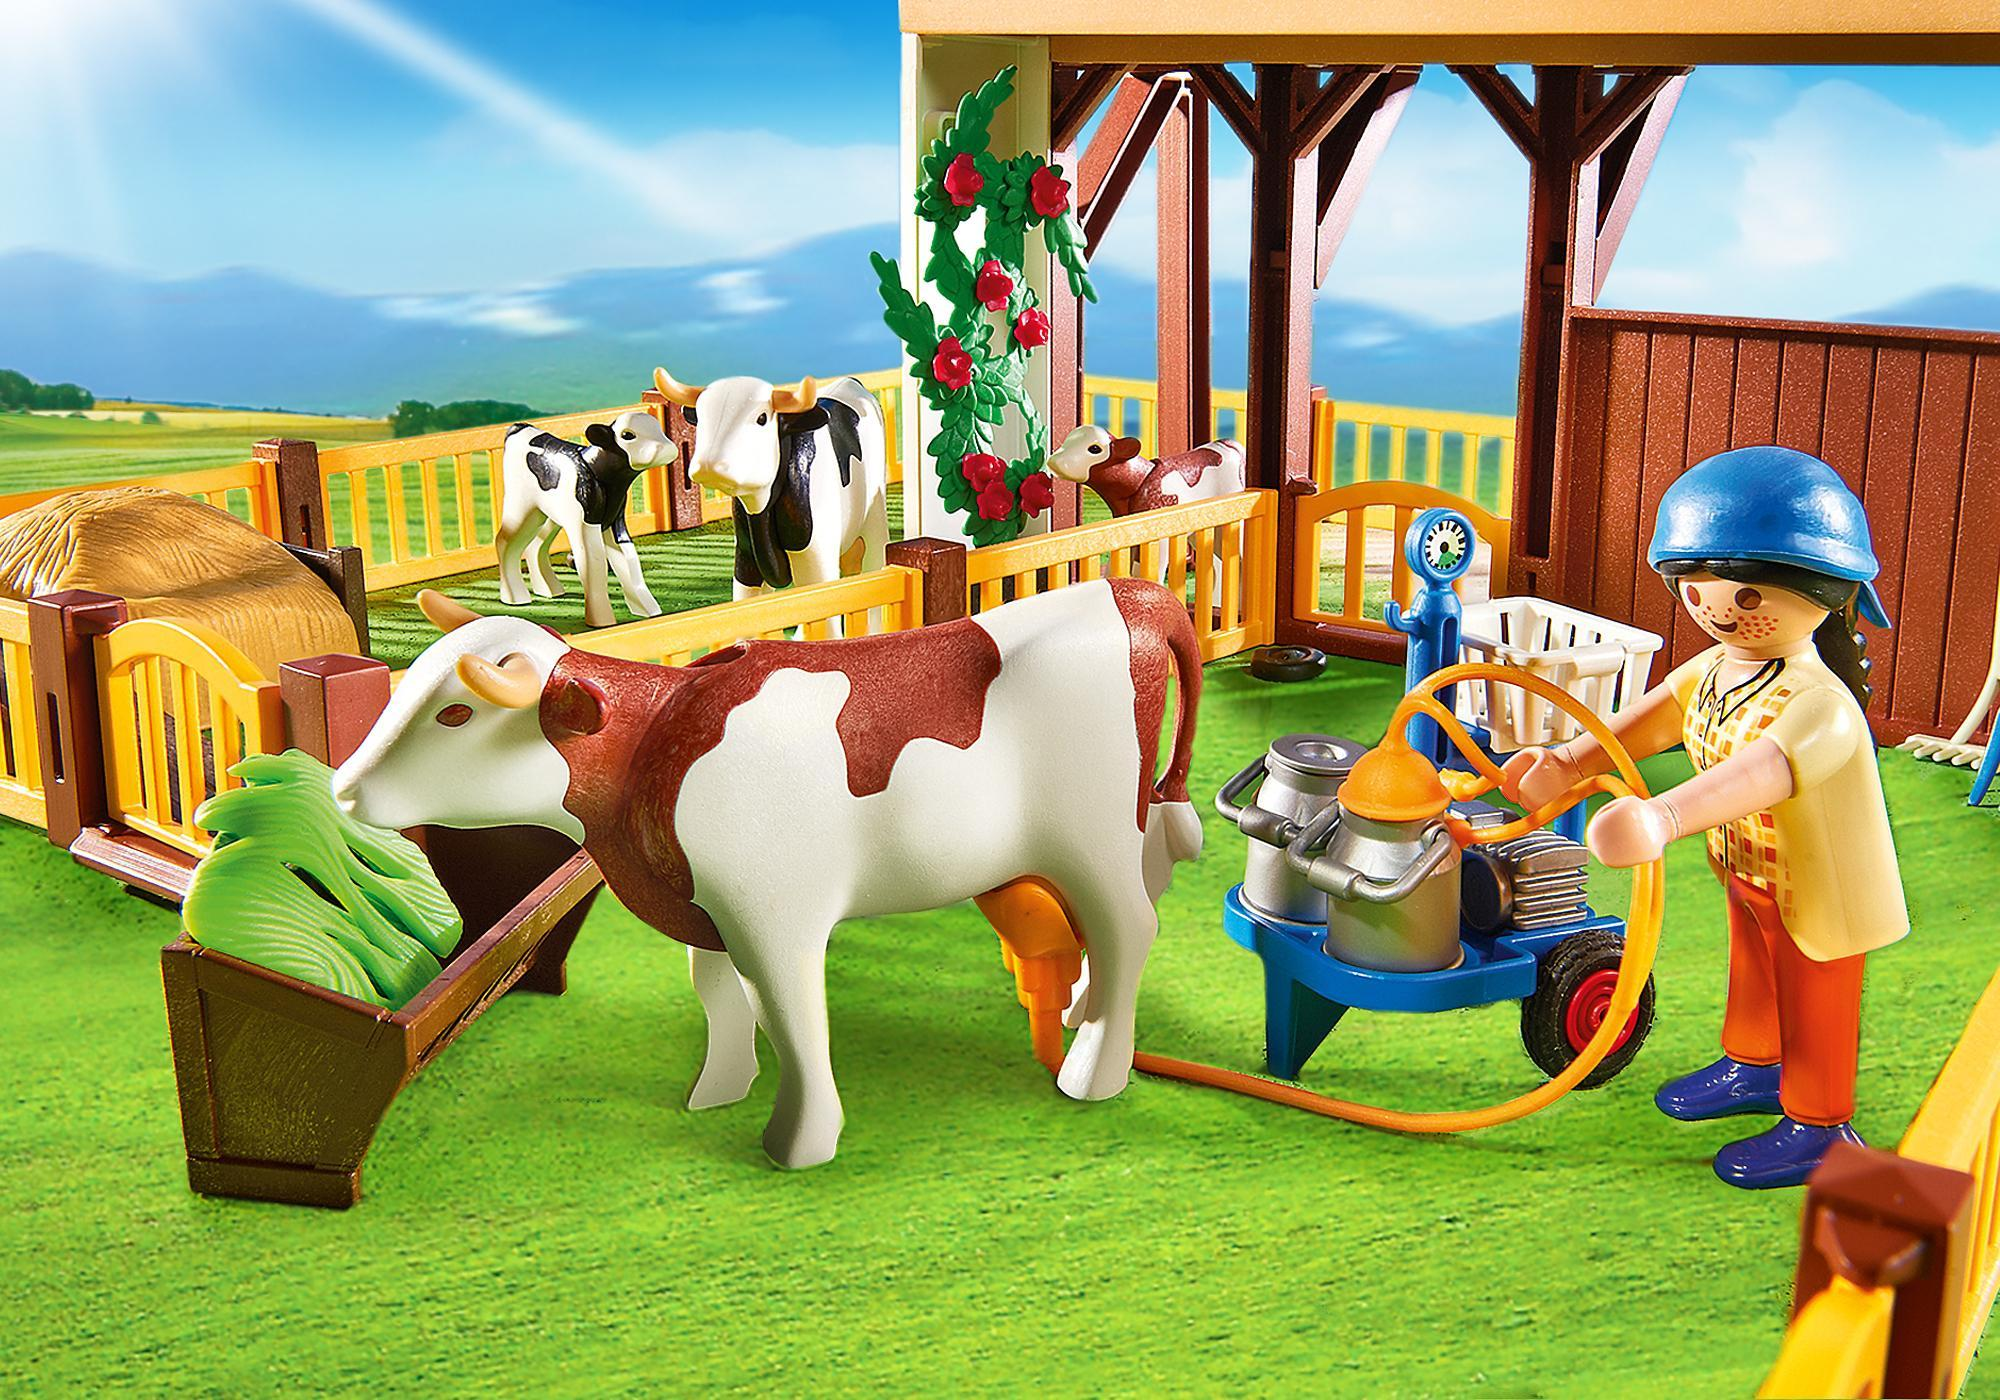 http://media.playmobil.com/i/playmobil/6120_product_extra1/Large Farm